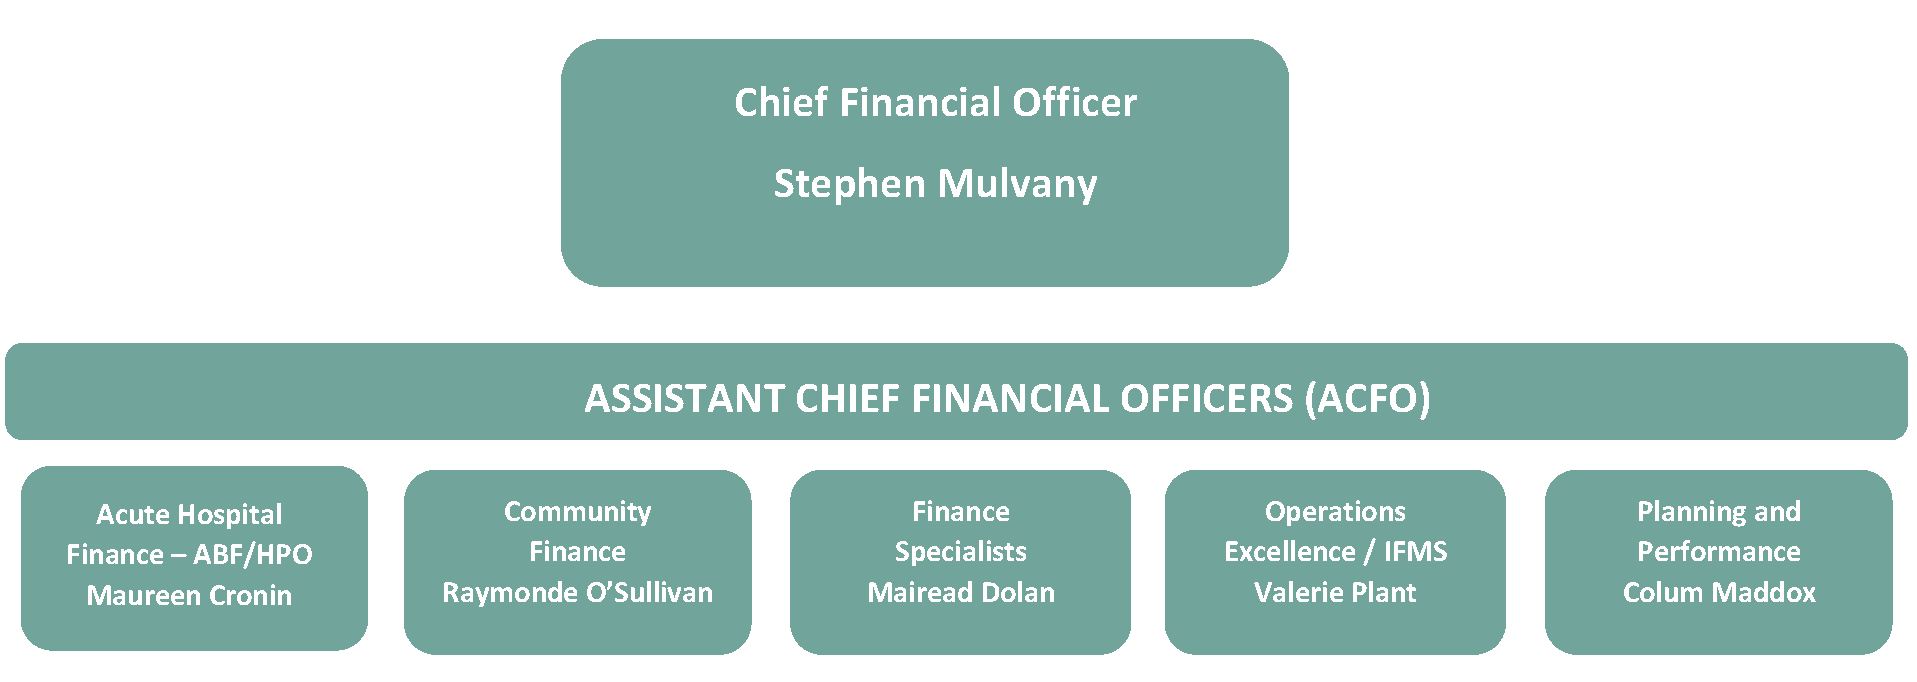 CFO and ACFO Org Chart 20200220